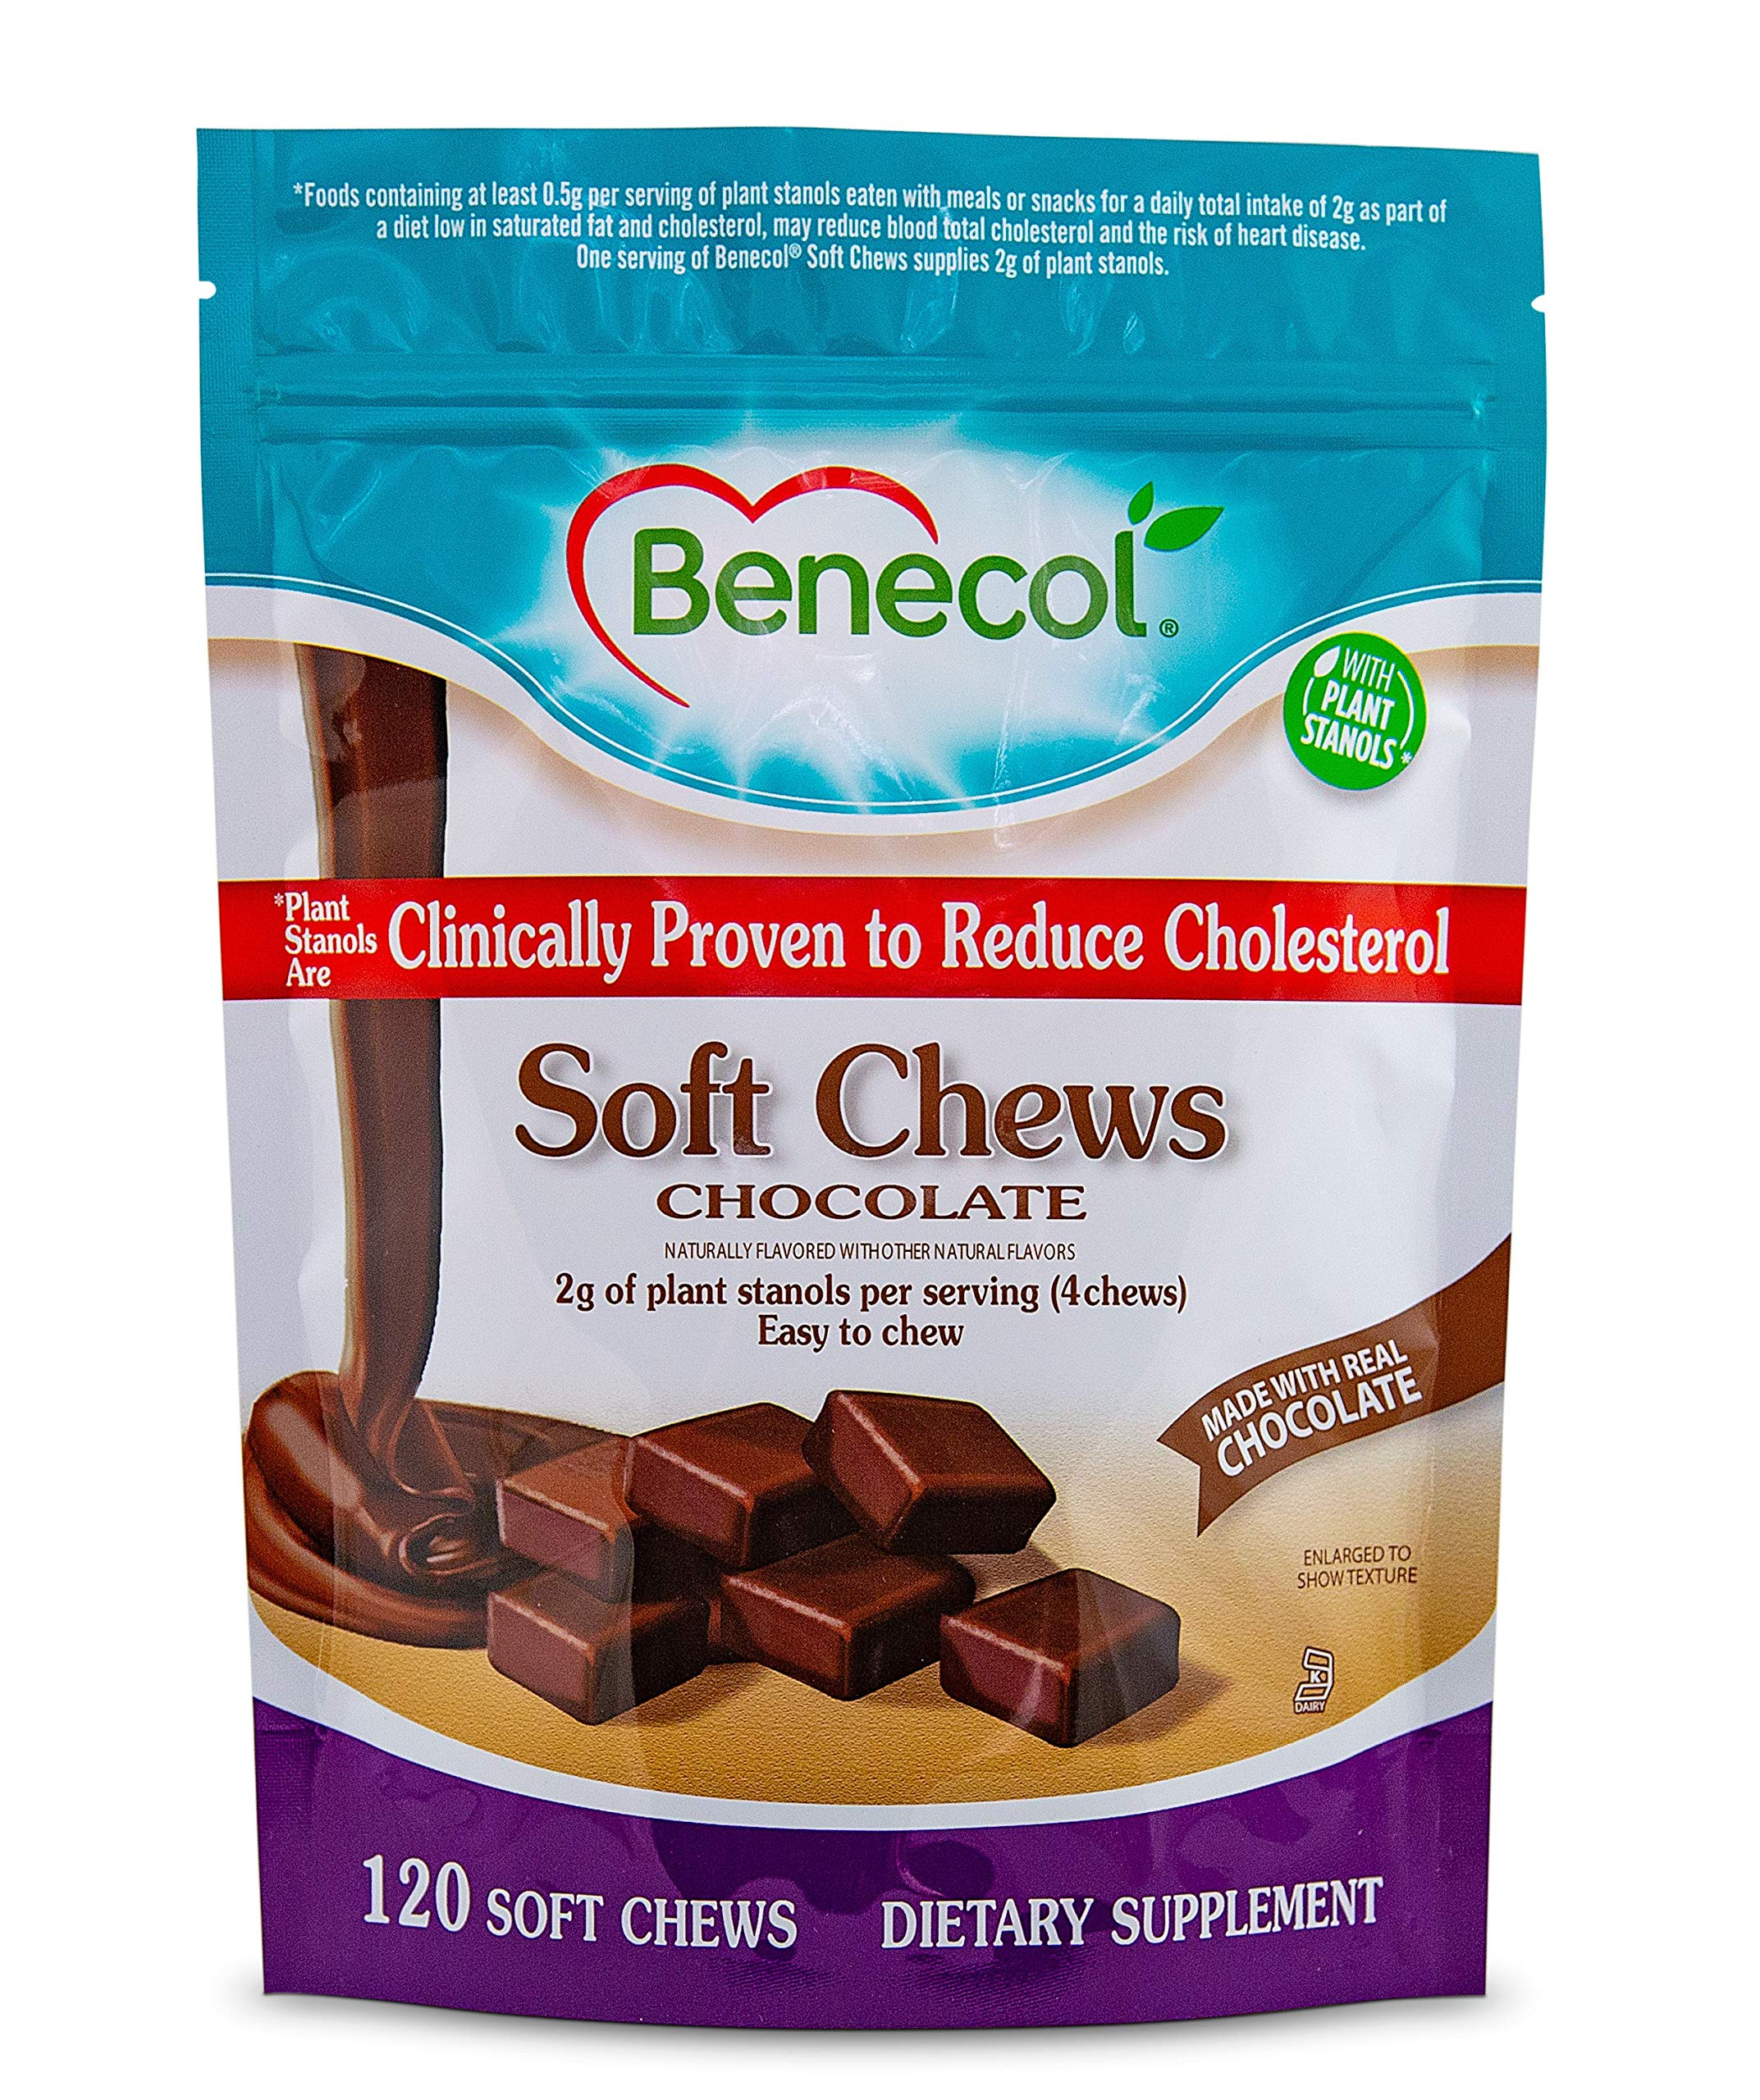 Benecol® Soft Chews - Dietary Supplement Made with Cholesterol-Lowering Plant Stanols, which are Clinically Proven to Reduce Total & LDL Cholesterol (120 Chocolate Chews) by Benecol